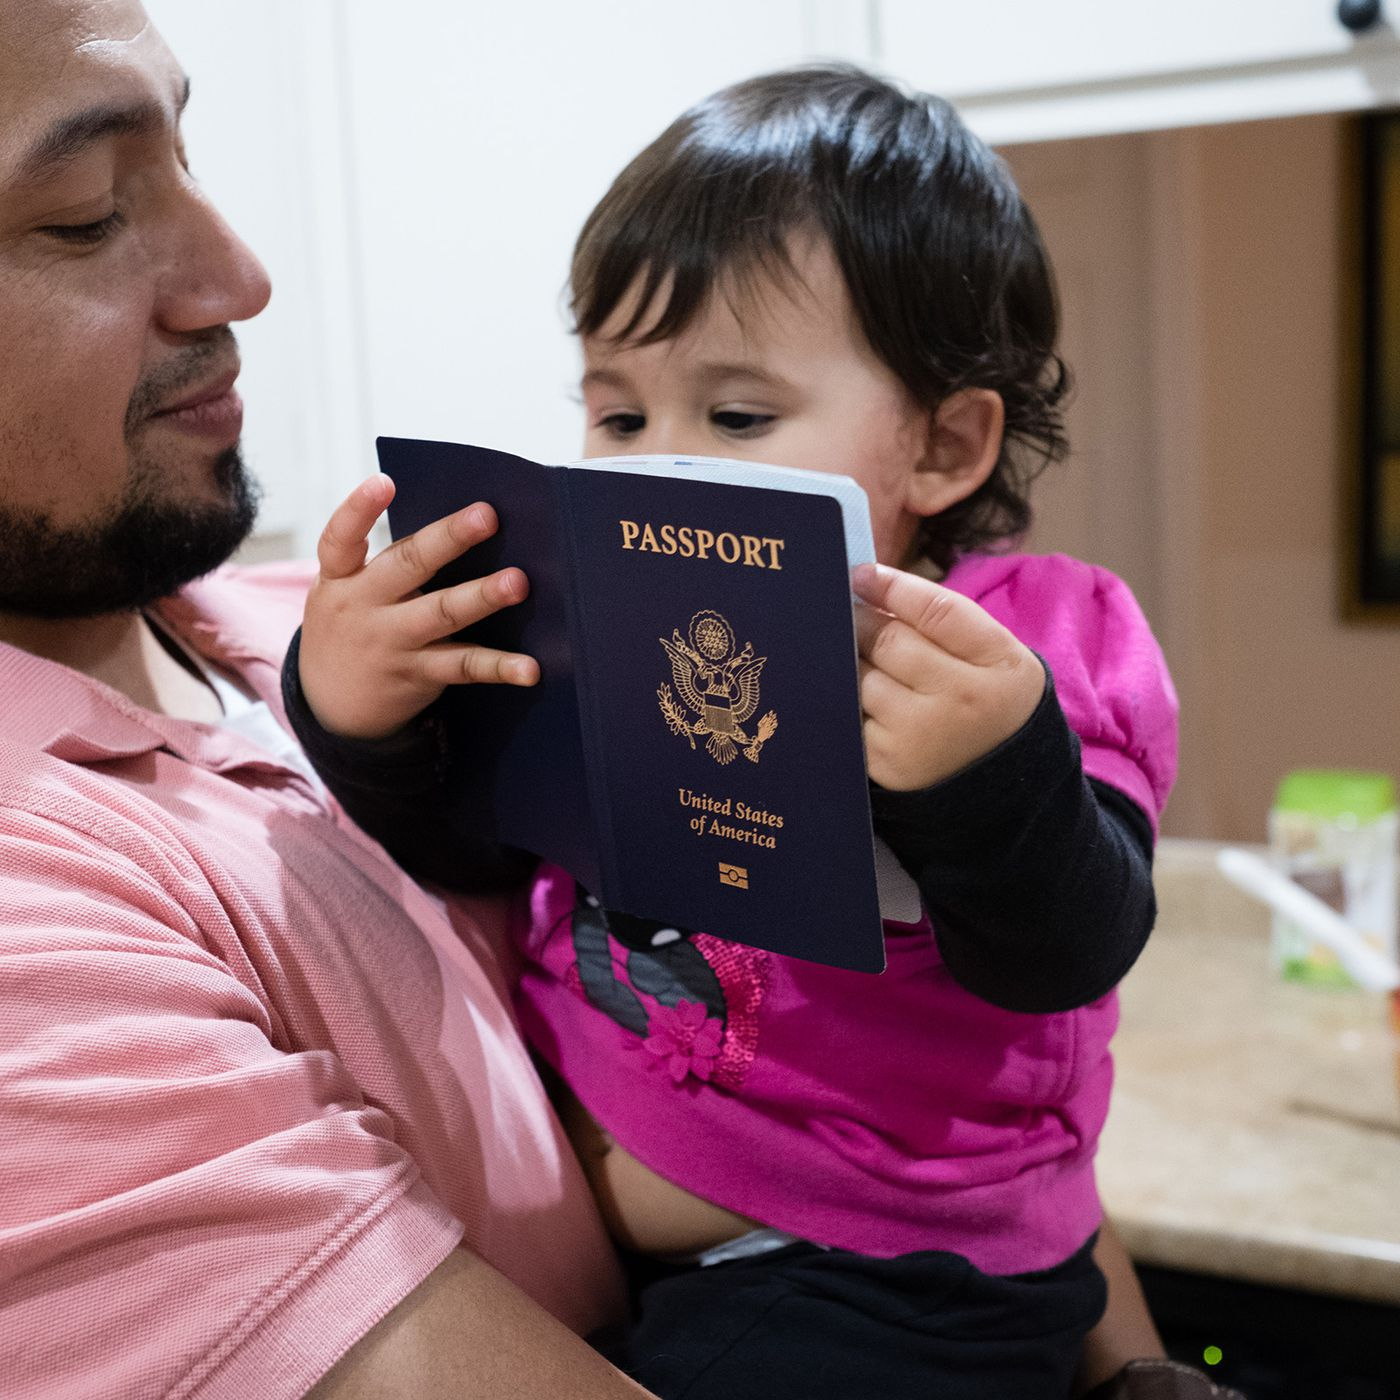 TPS: Judge blocks Trump's efforts to end Temporary Protected Status